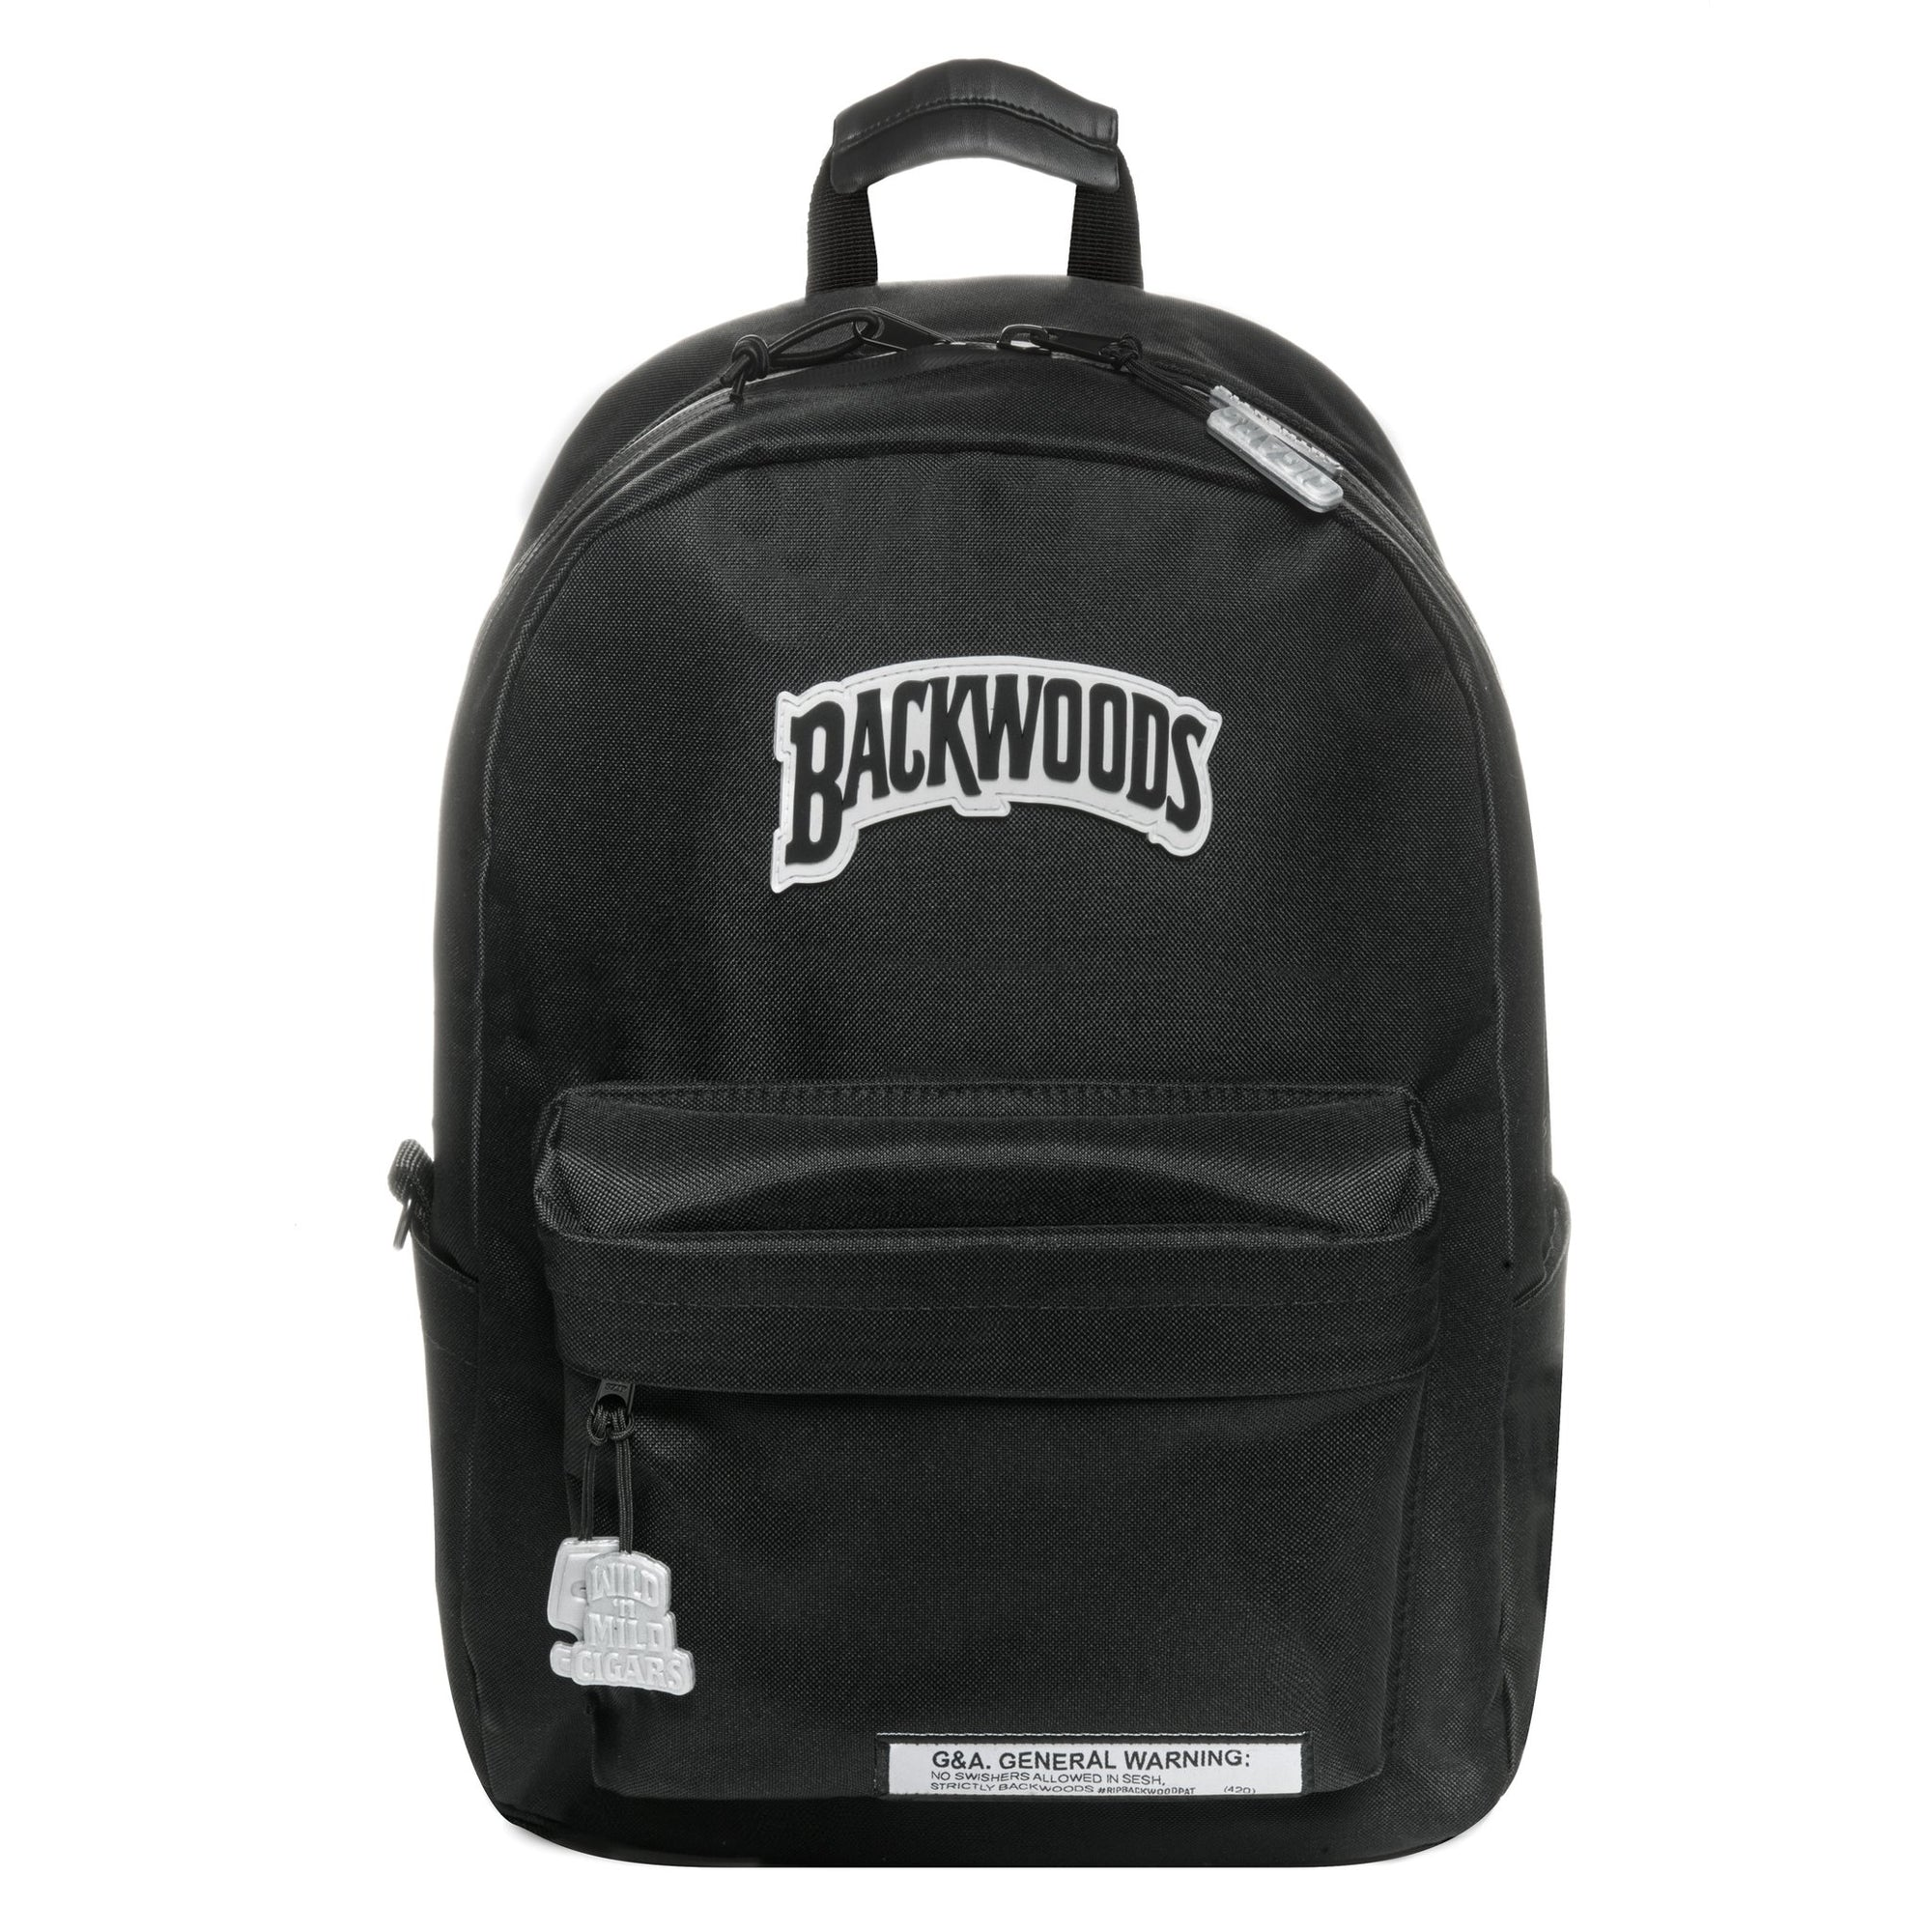 Smellproof Backwoods Backpack